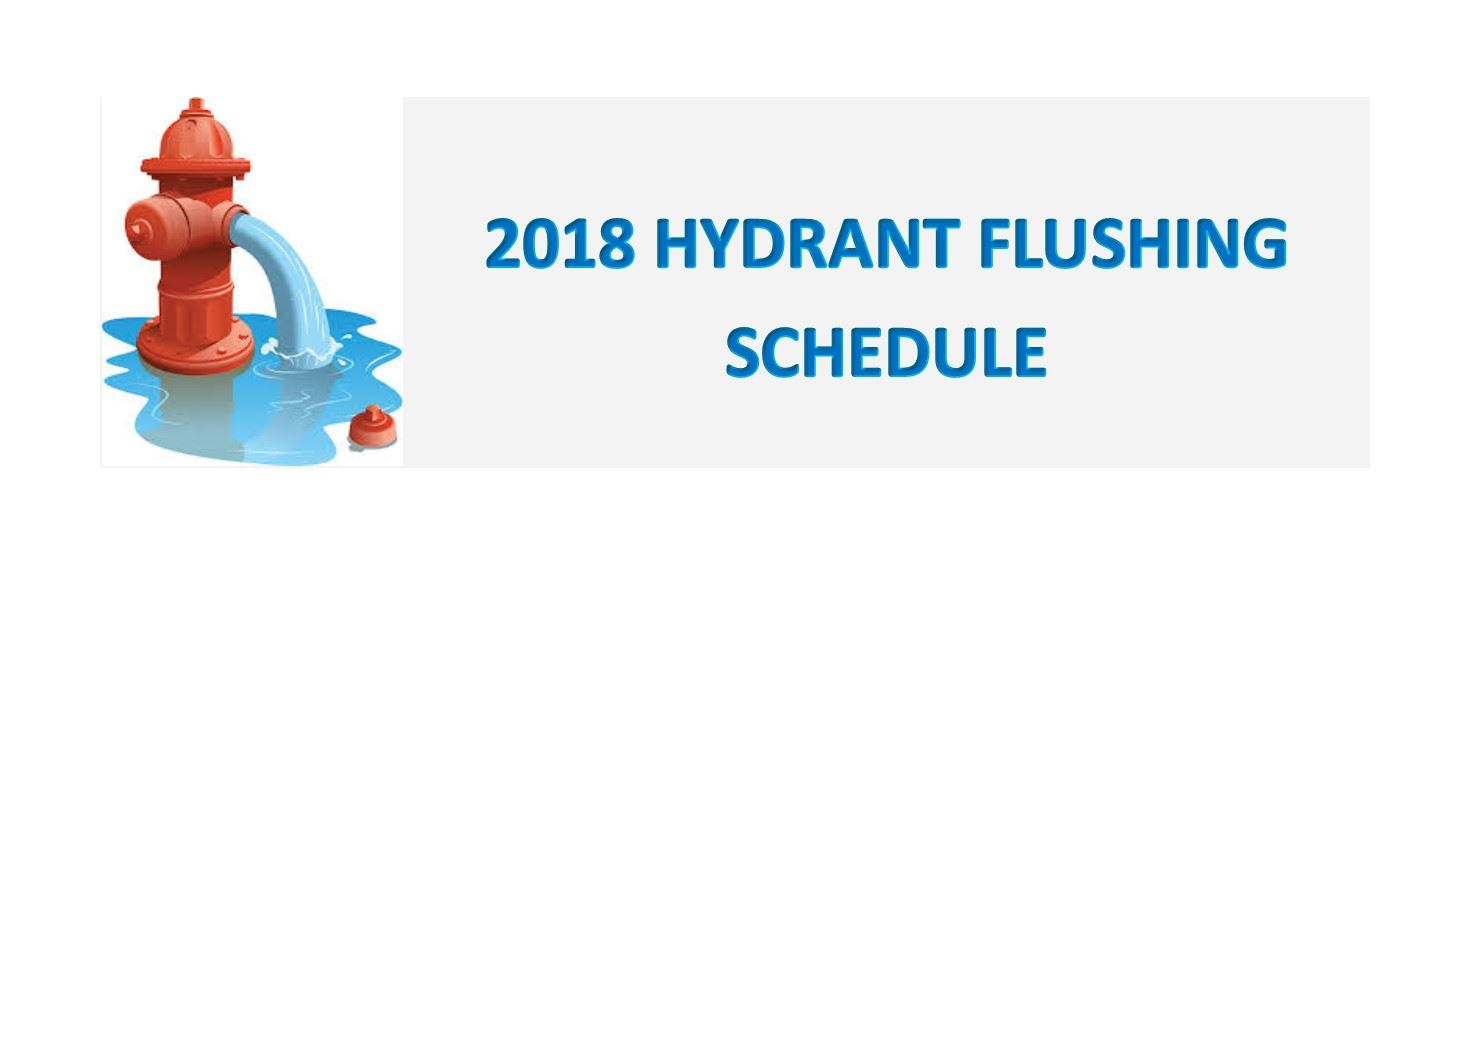 2018 Hydrant Flushing Schedule